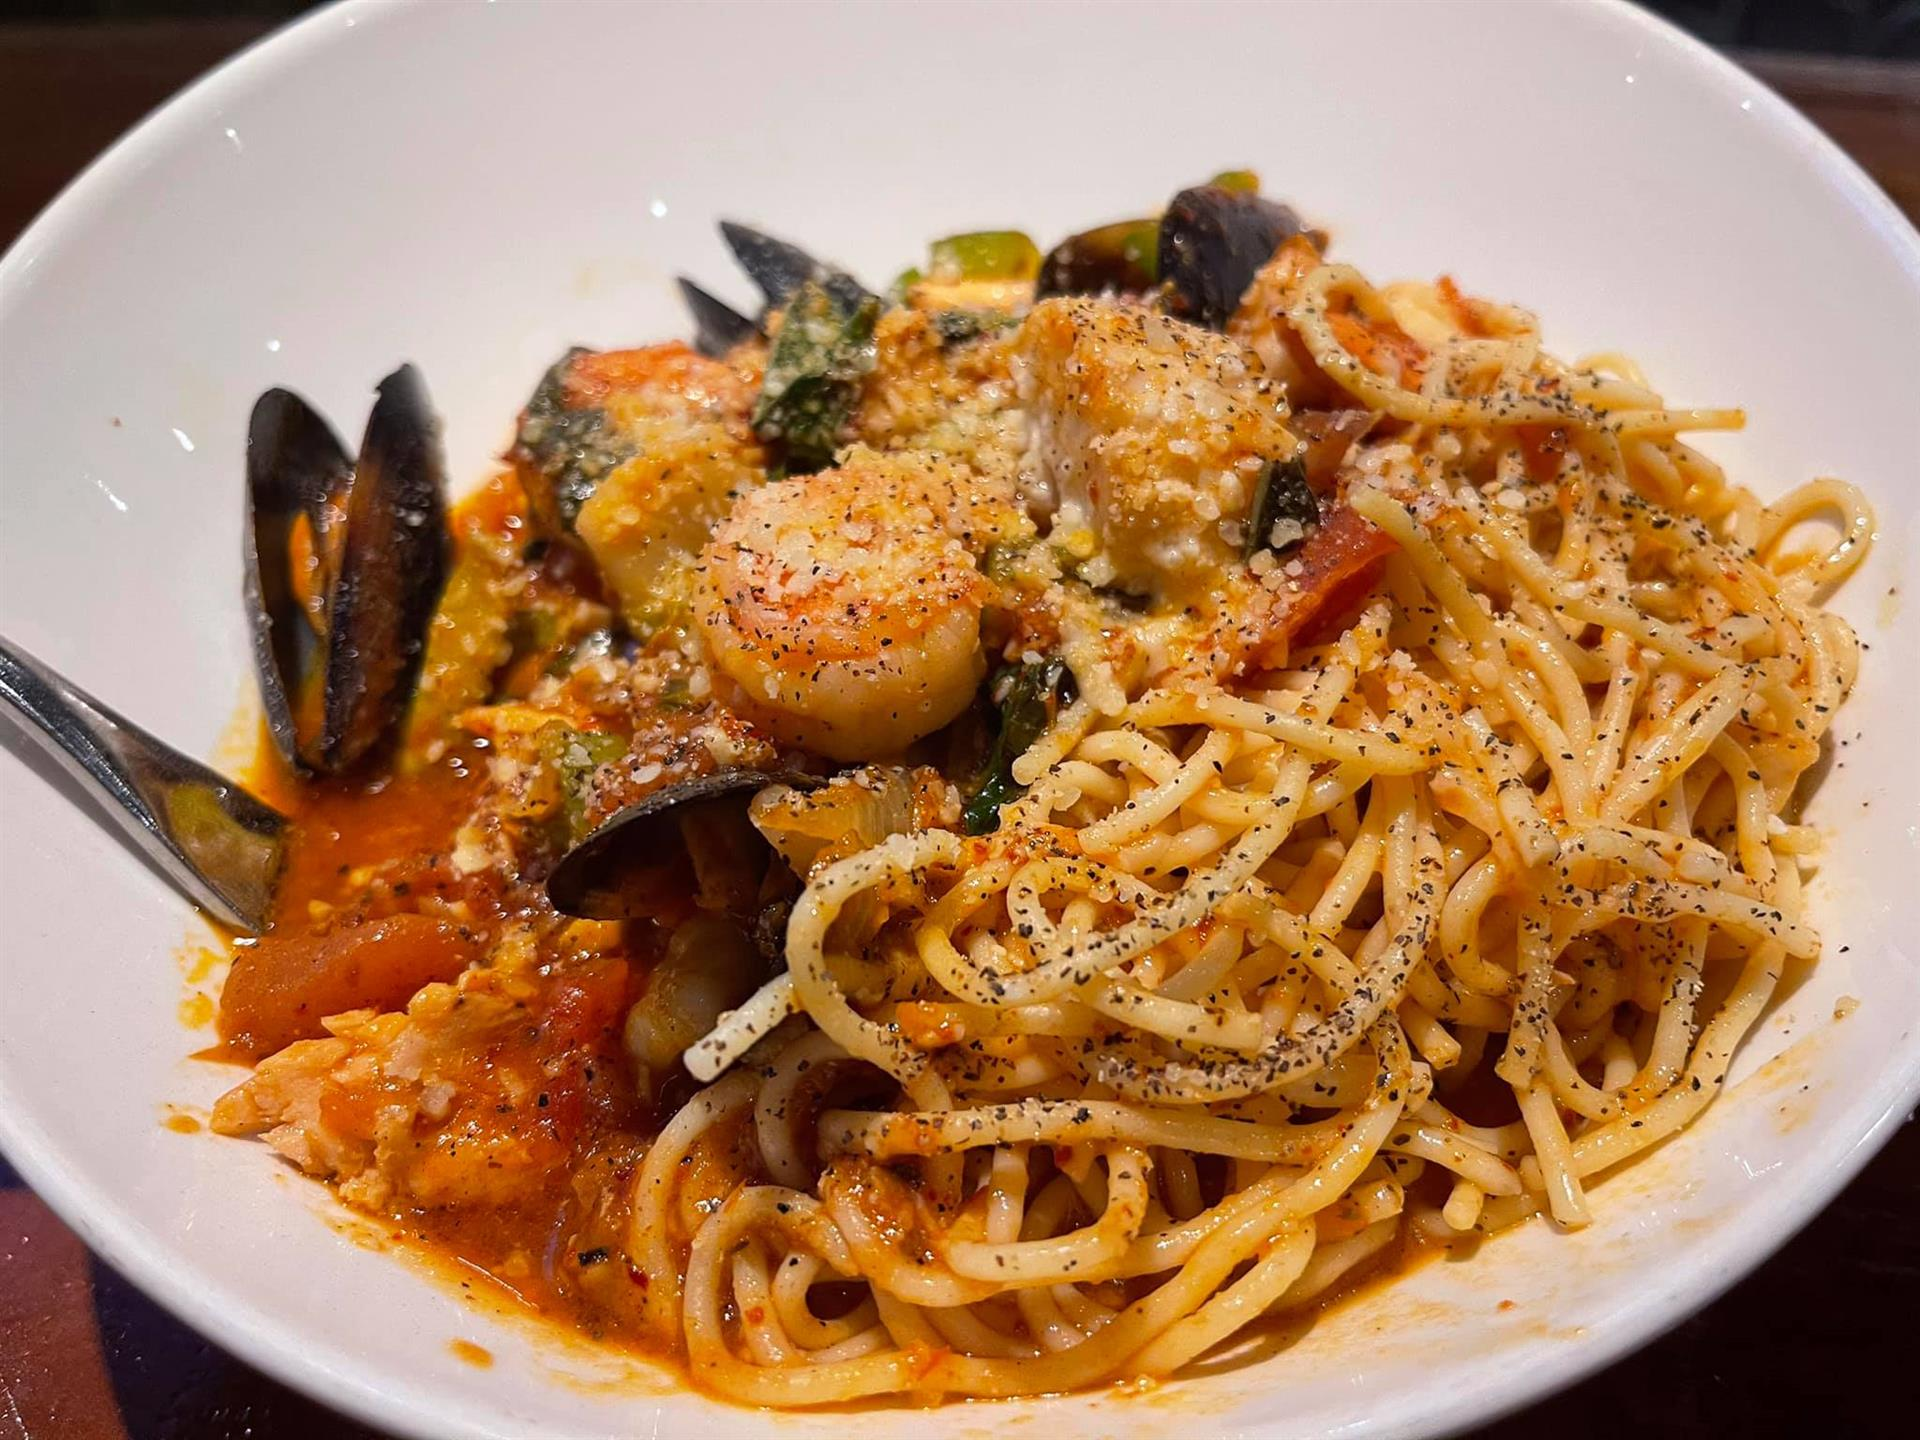 Plate of pasta with shrimp and mussles